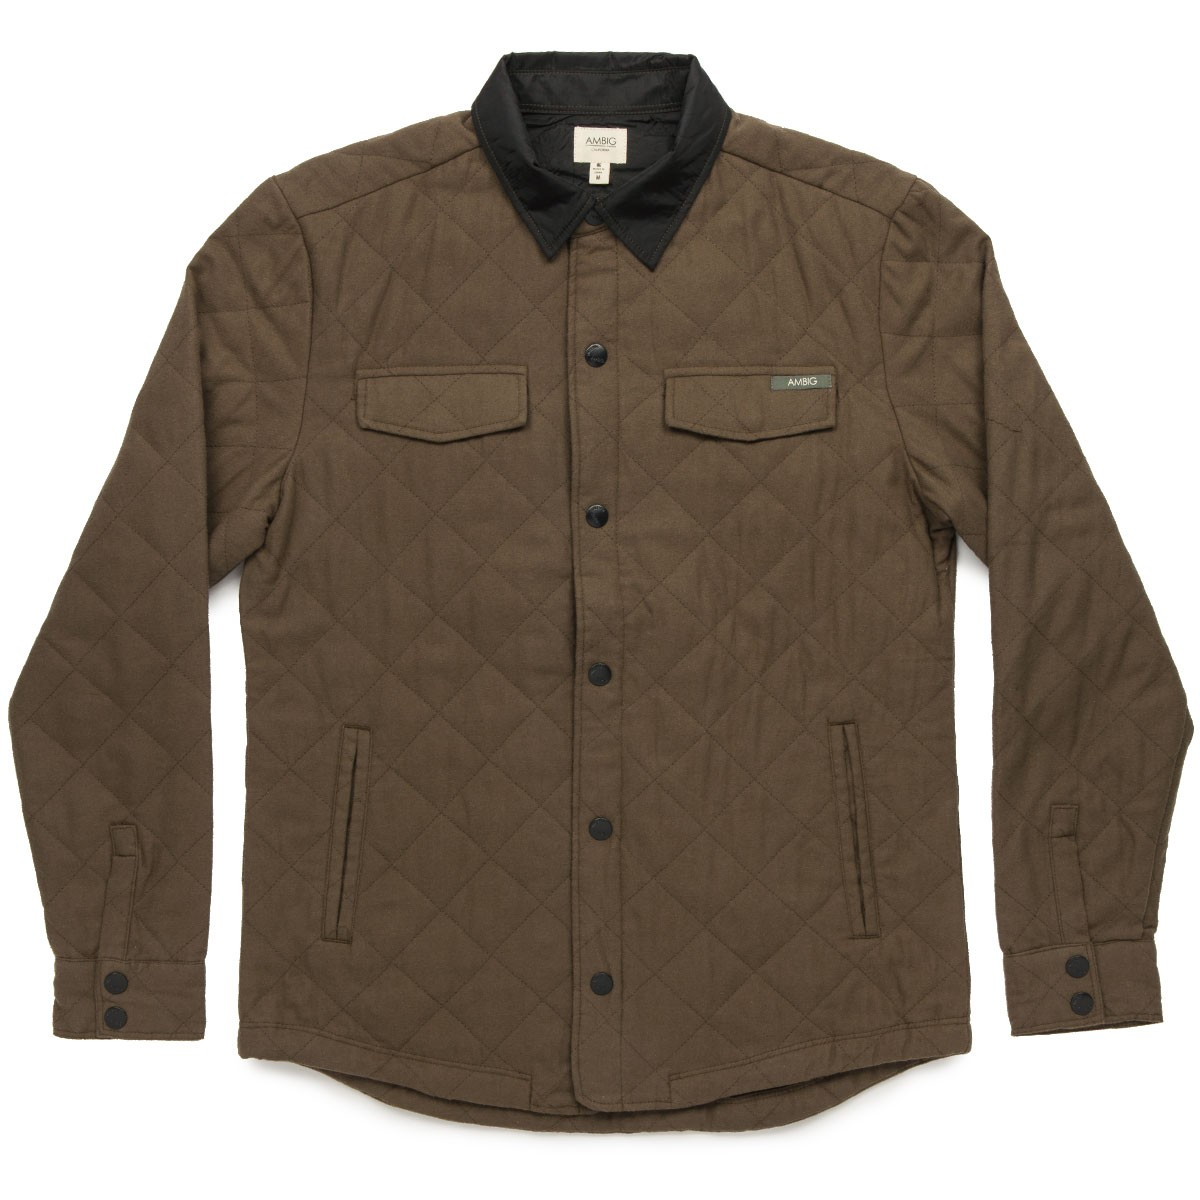 Ambig Ernie Quilted Jacket Olive